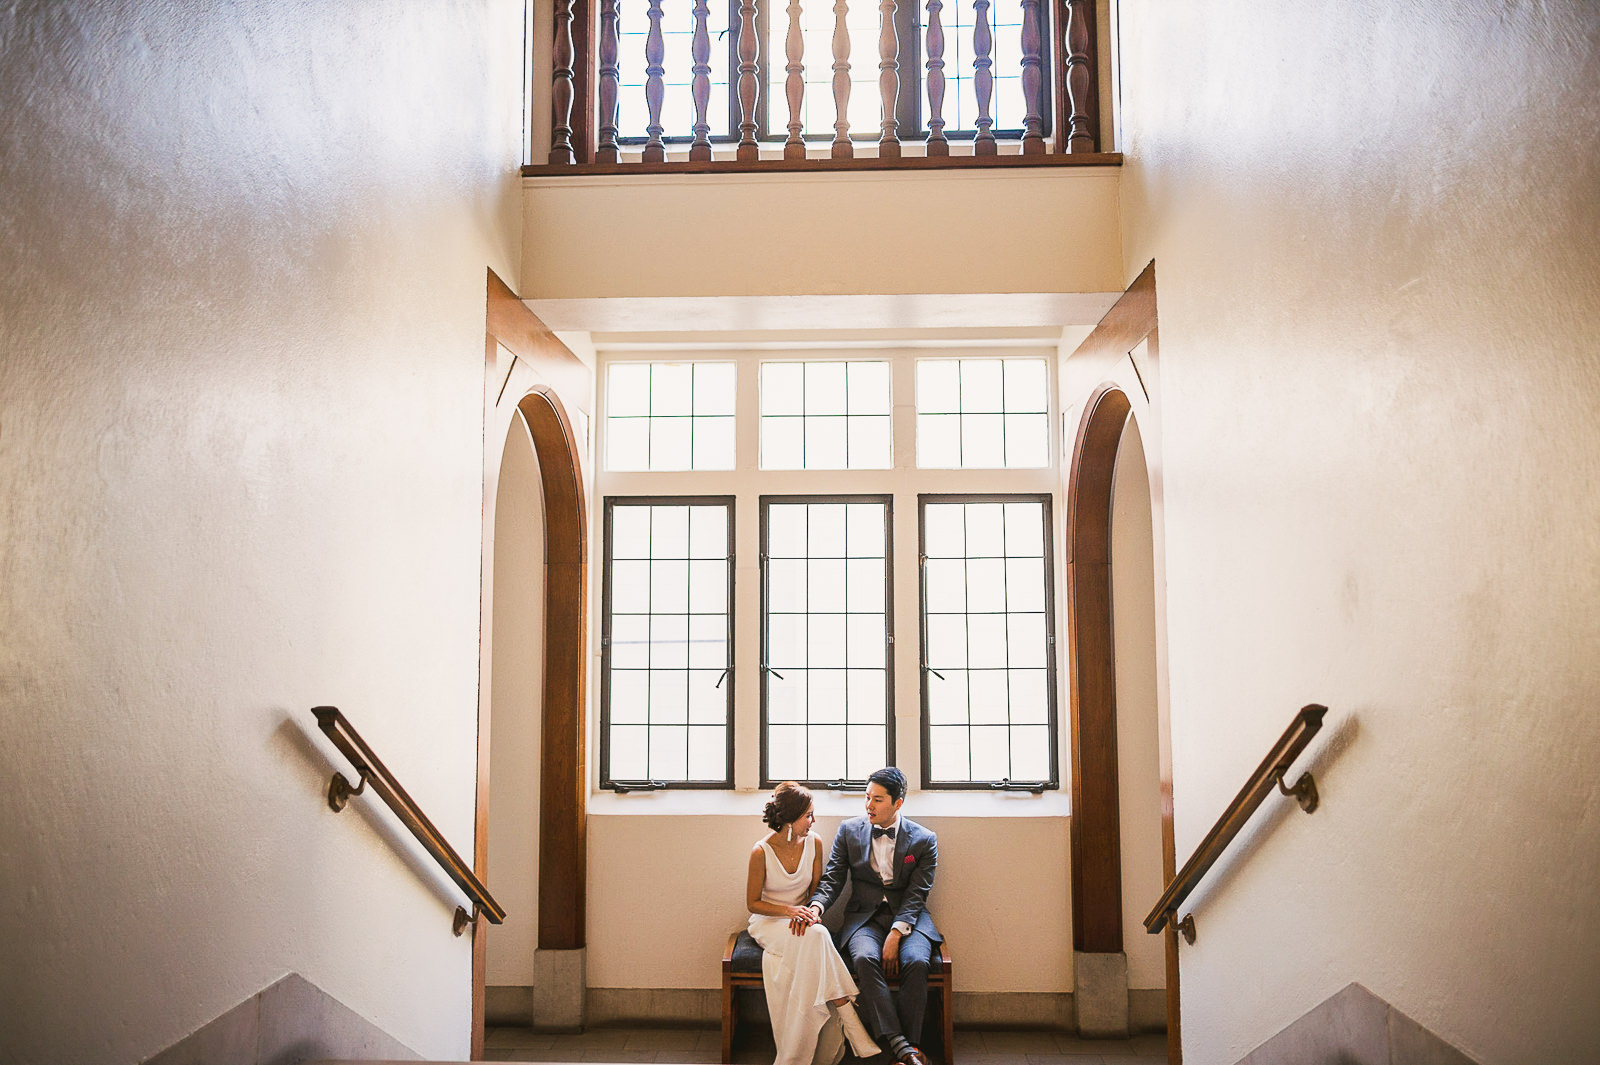 23 wedding photographer - Rebecca + Doha // Wedding Photos at Room 1520 Chicago